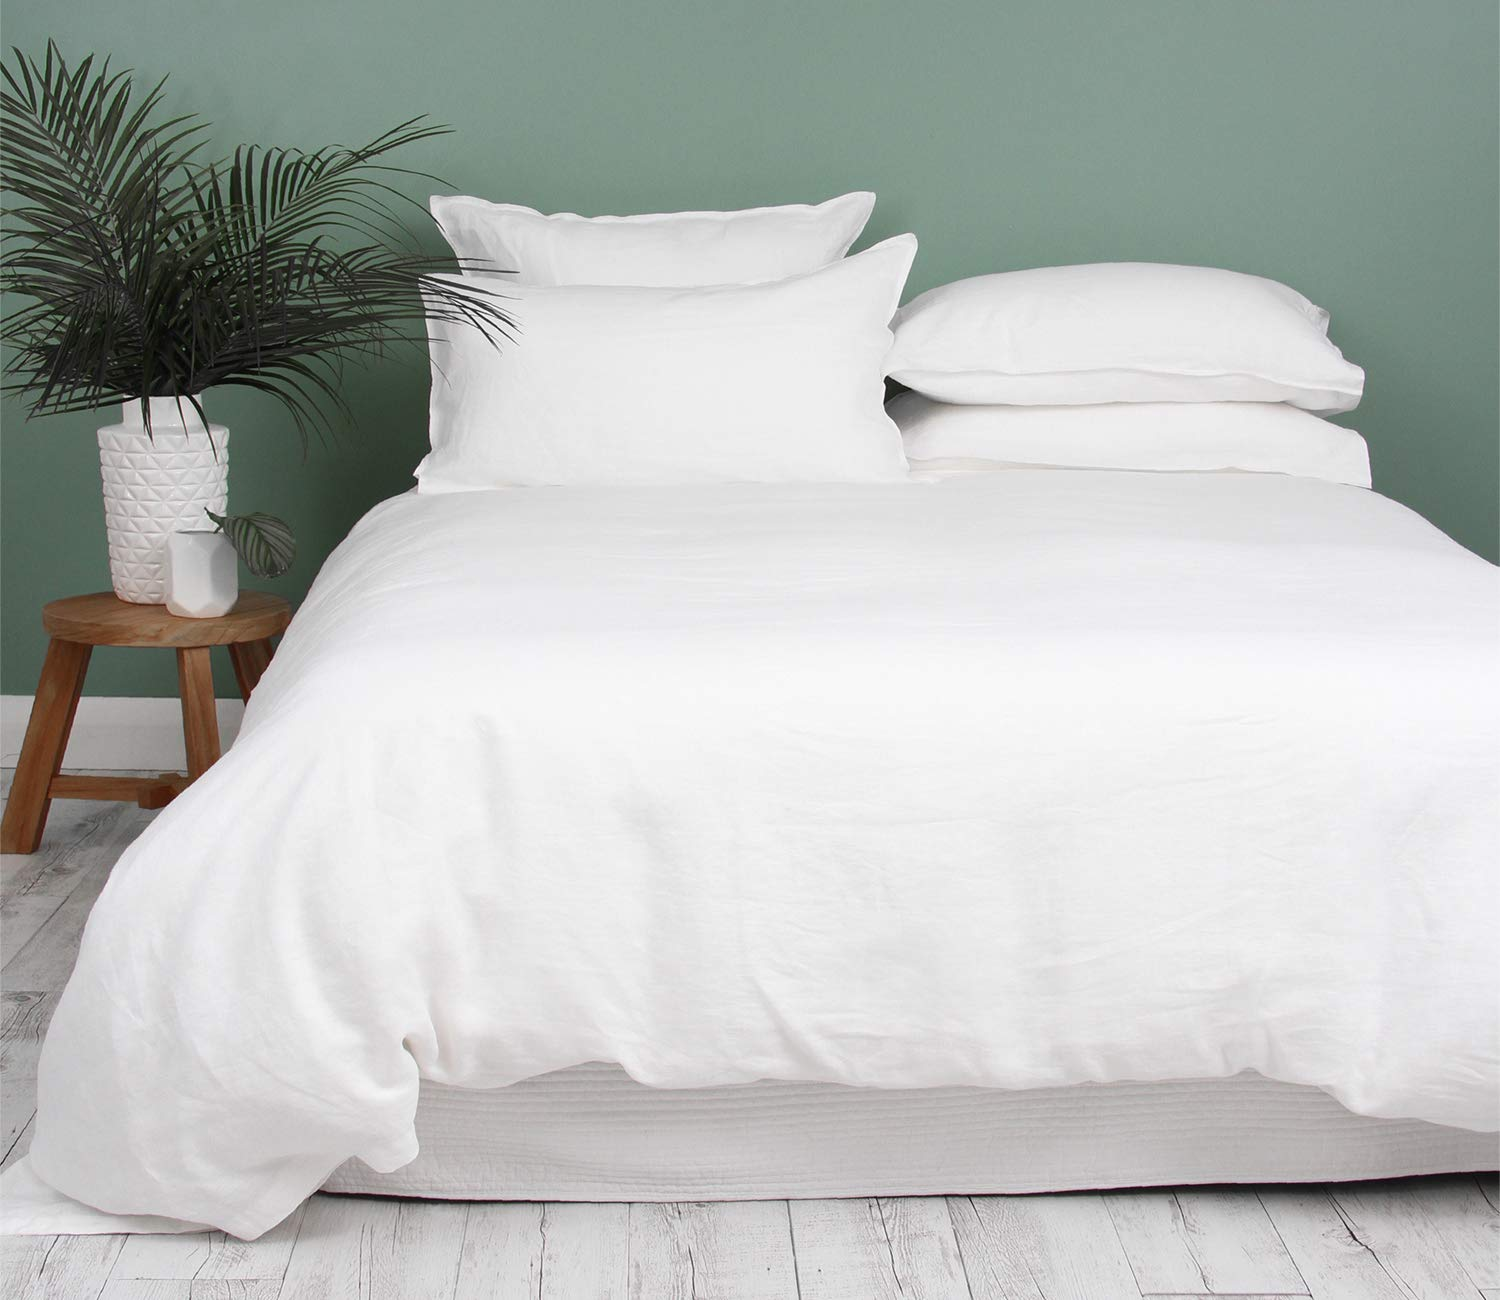 Kotton Culture 600 Thread Count 100% Organic Cotton Duvet Cover with Corner Ties & Zipper Closer GOTS Certified Luxurious, Durable and Hypoallergenic Ultra Soft (King/Cal King, White)